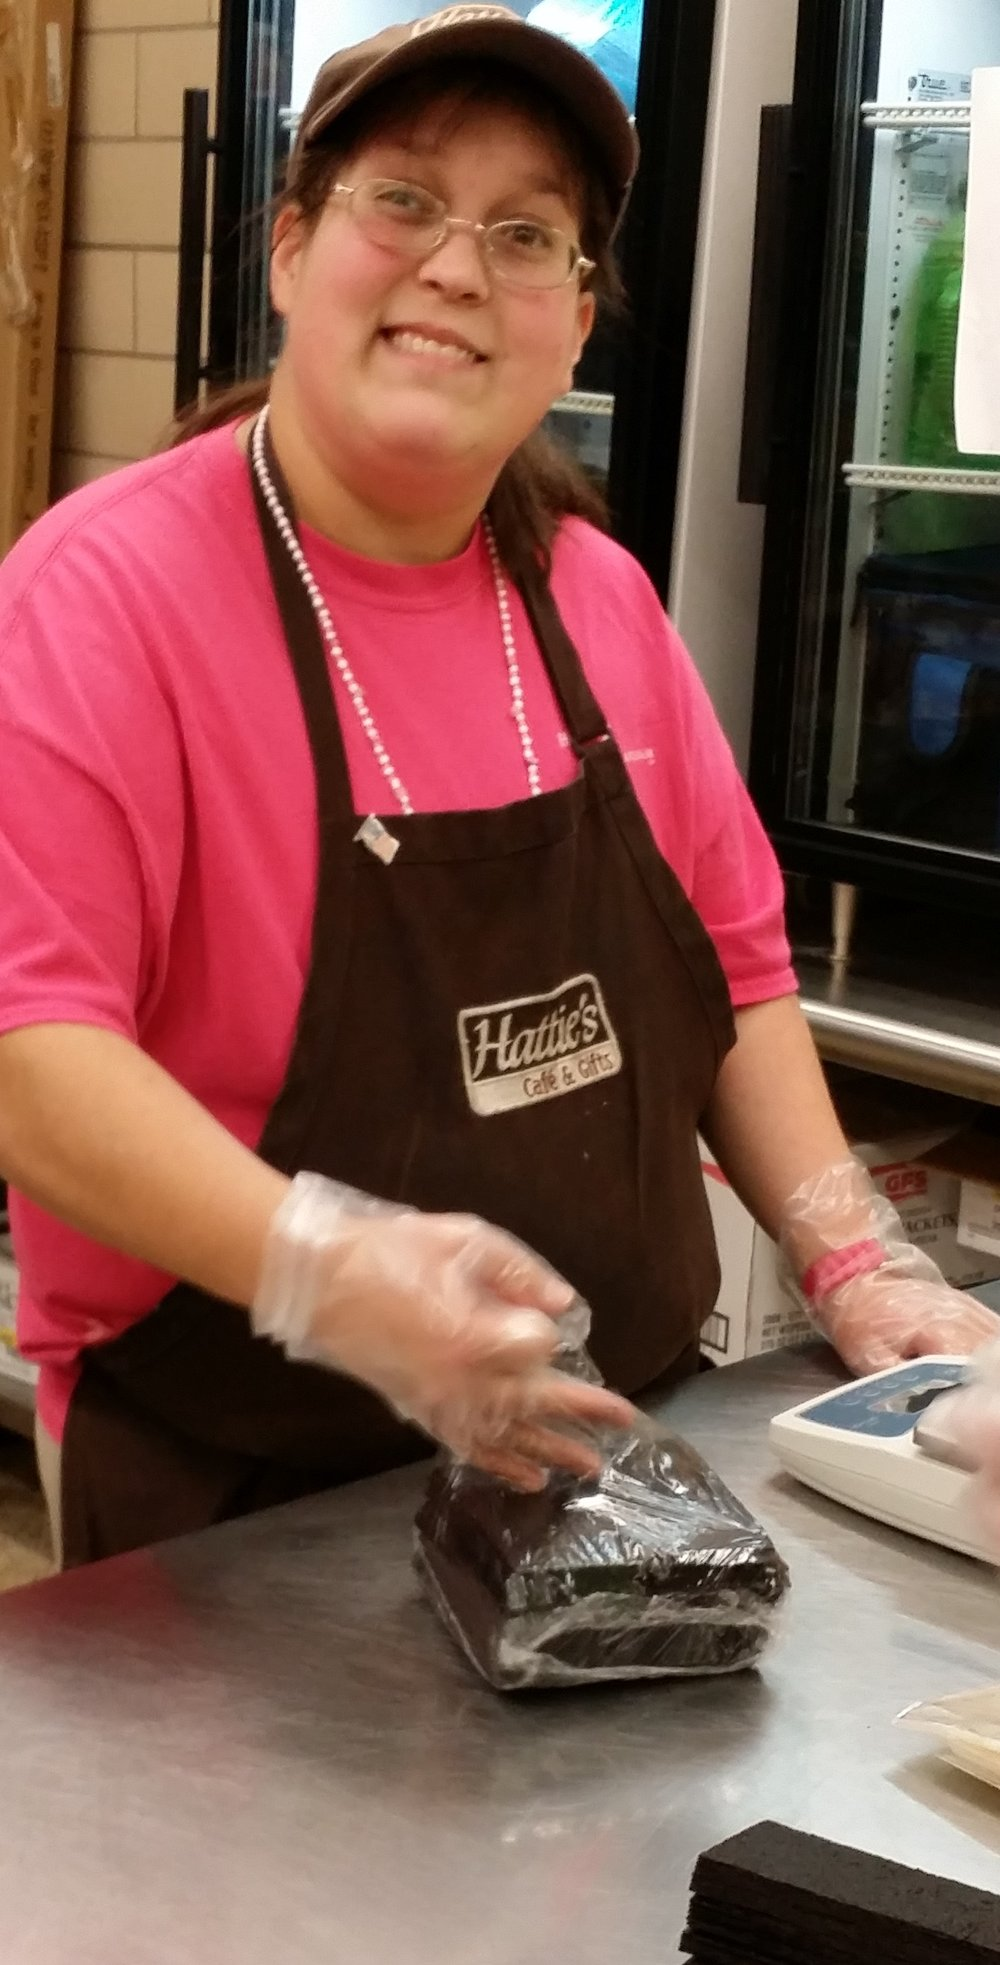 Here's a picture of Briana, from Hattie Larhlam, finishing a batch of cut fruit snacks!